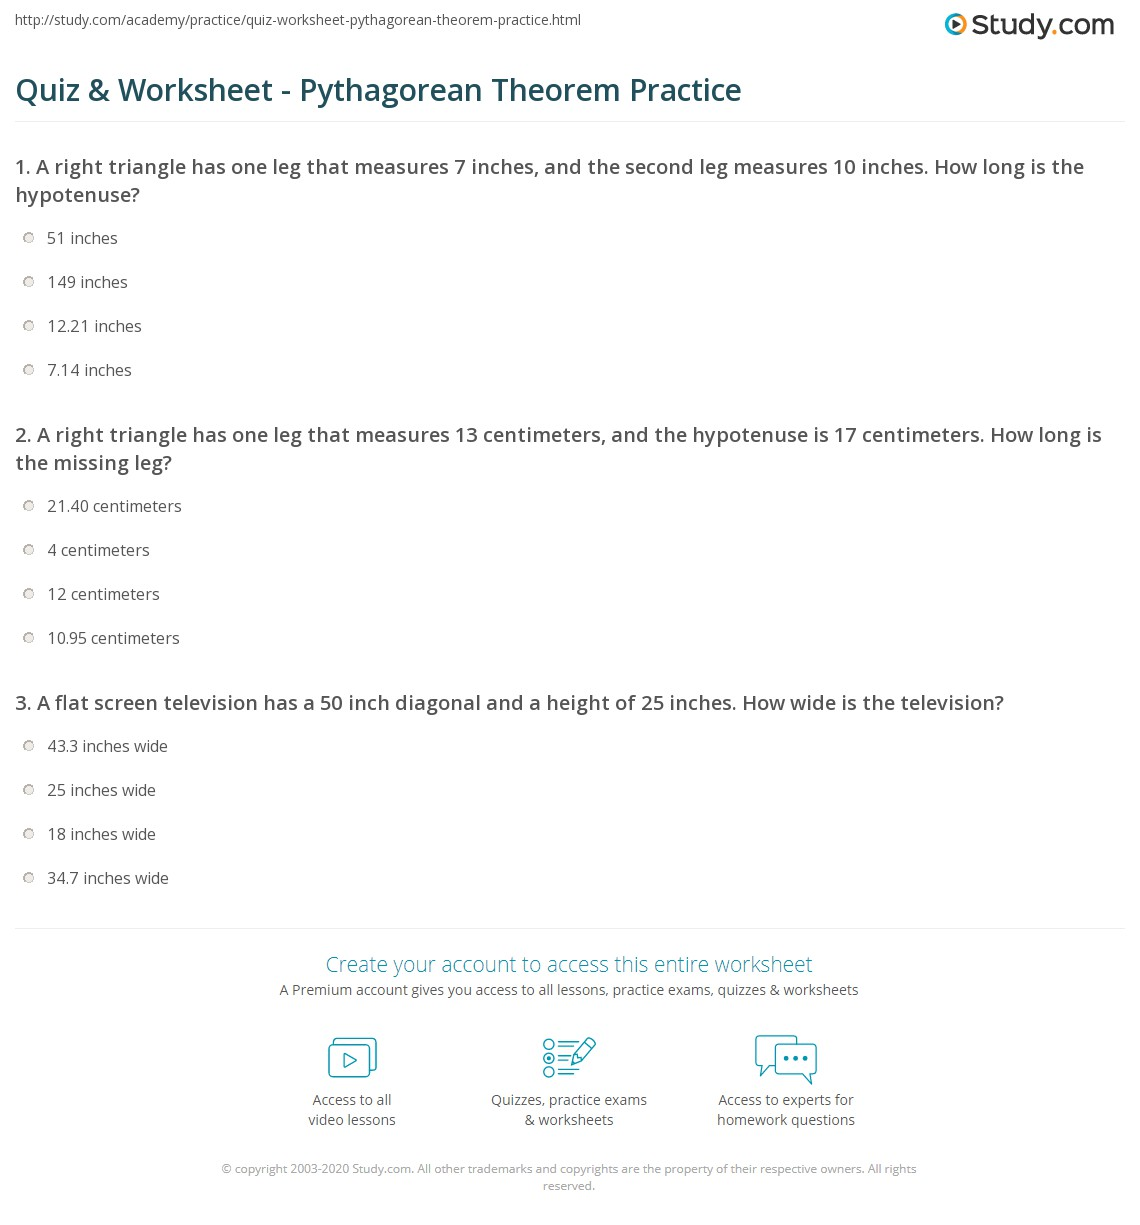 quiz worksheet pythagorean theorem practice. Black Bedroom Furniture Sets. Home Design Ideas